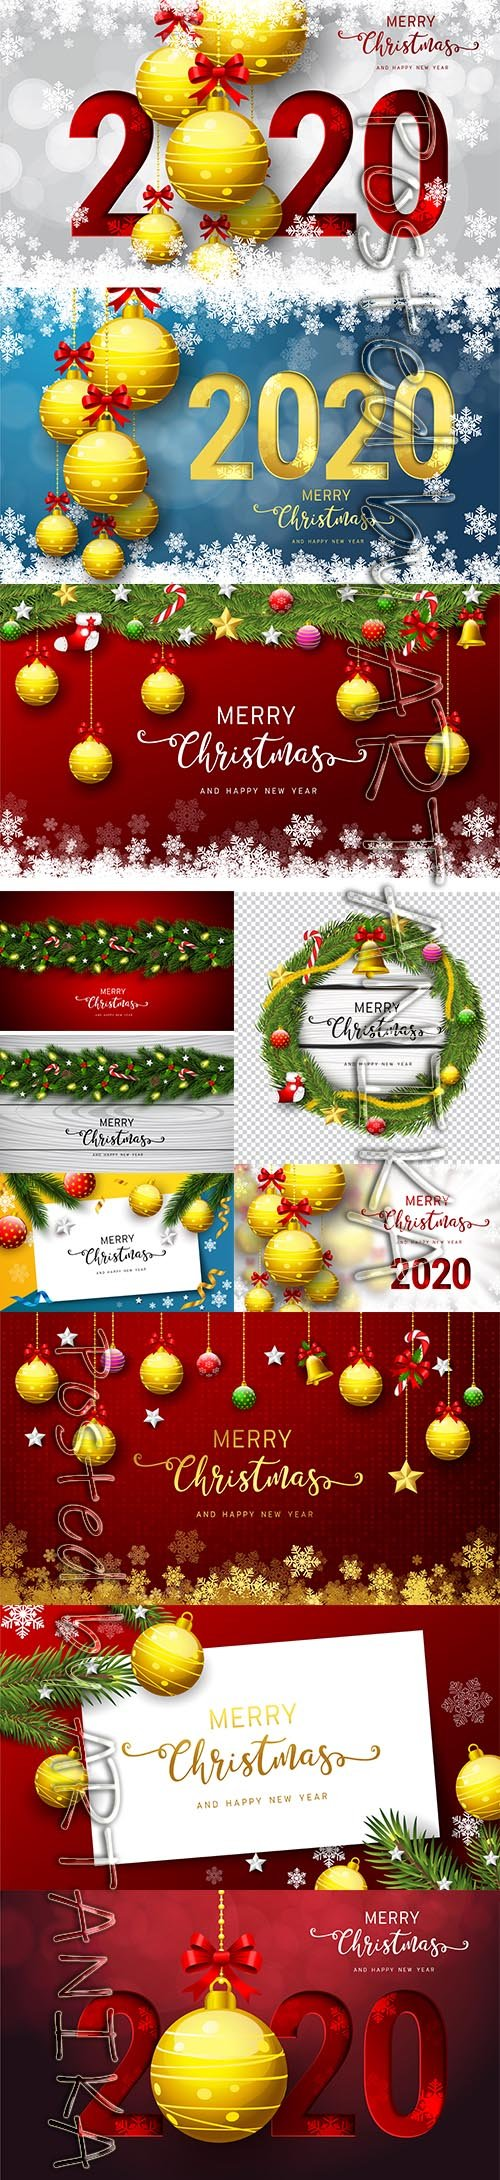 Merry Christmas and New Year 2020 Vector Illustrations Set Vol 14